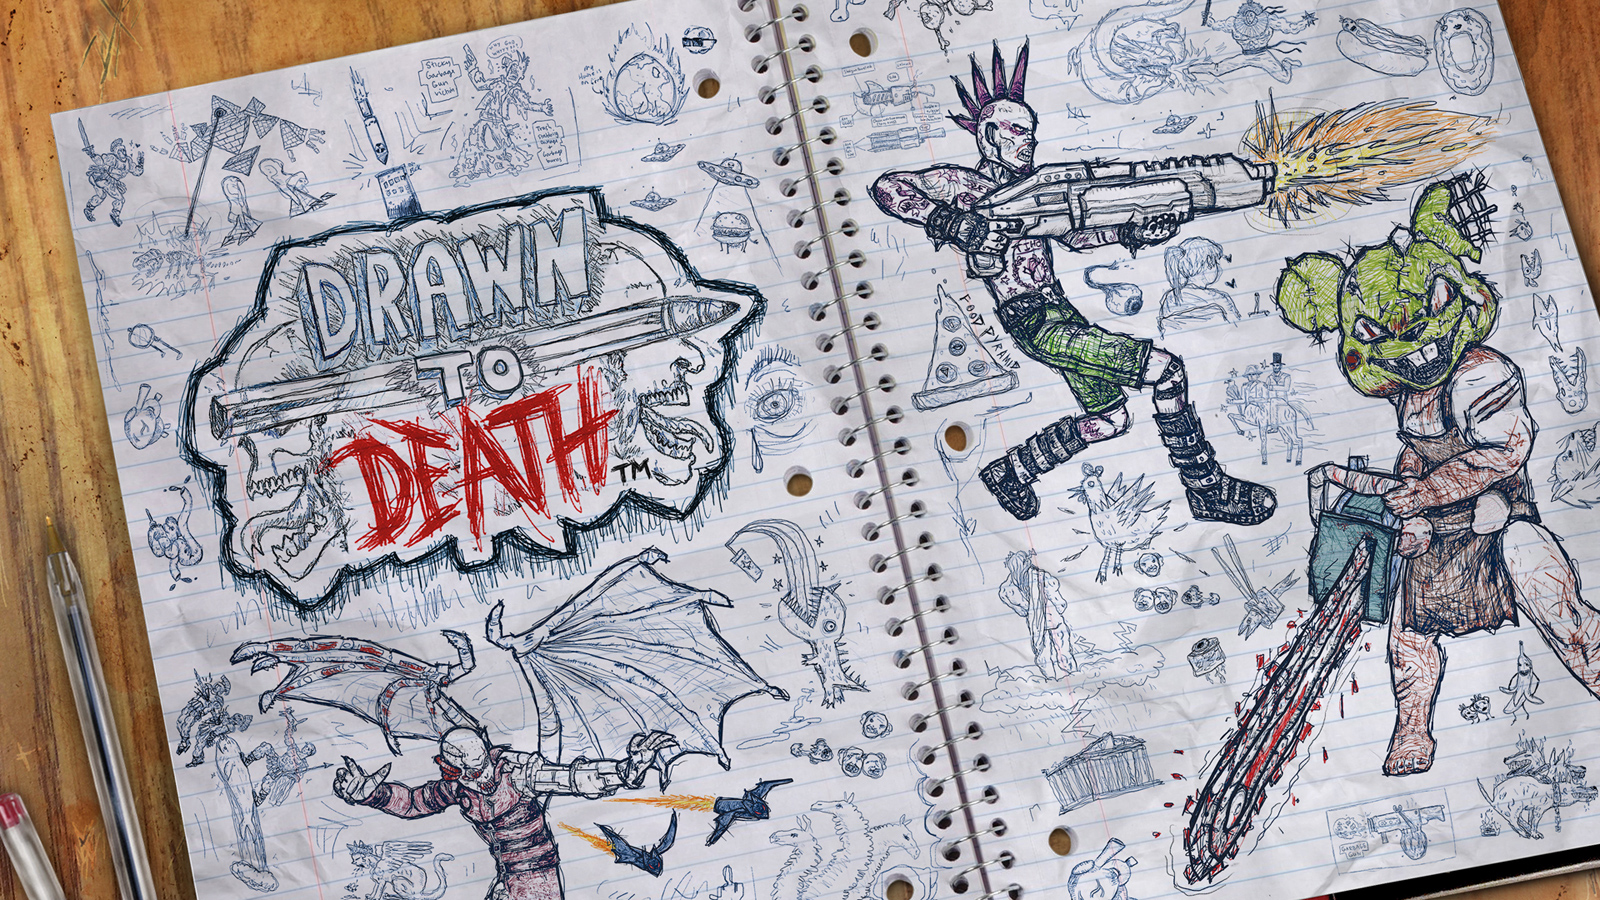 Review: Drawn to Death photo